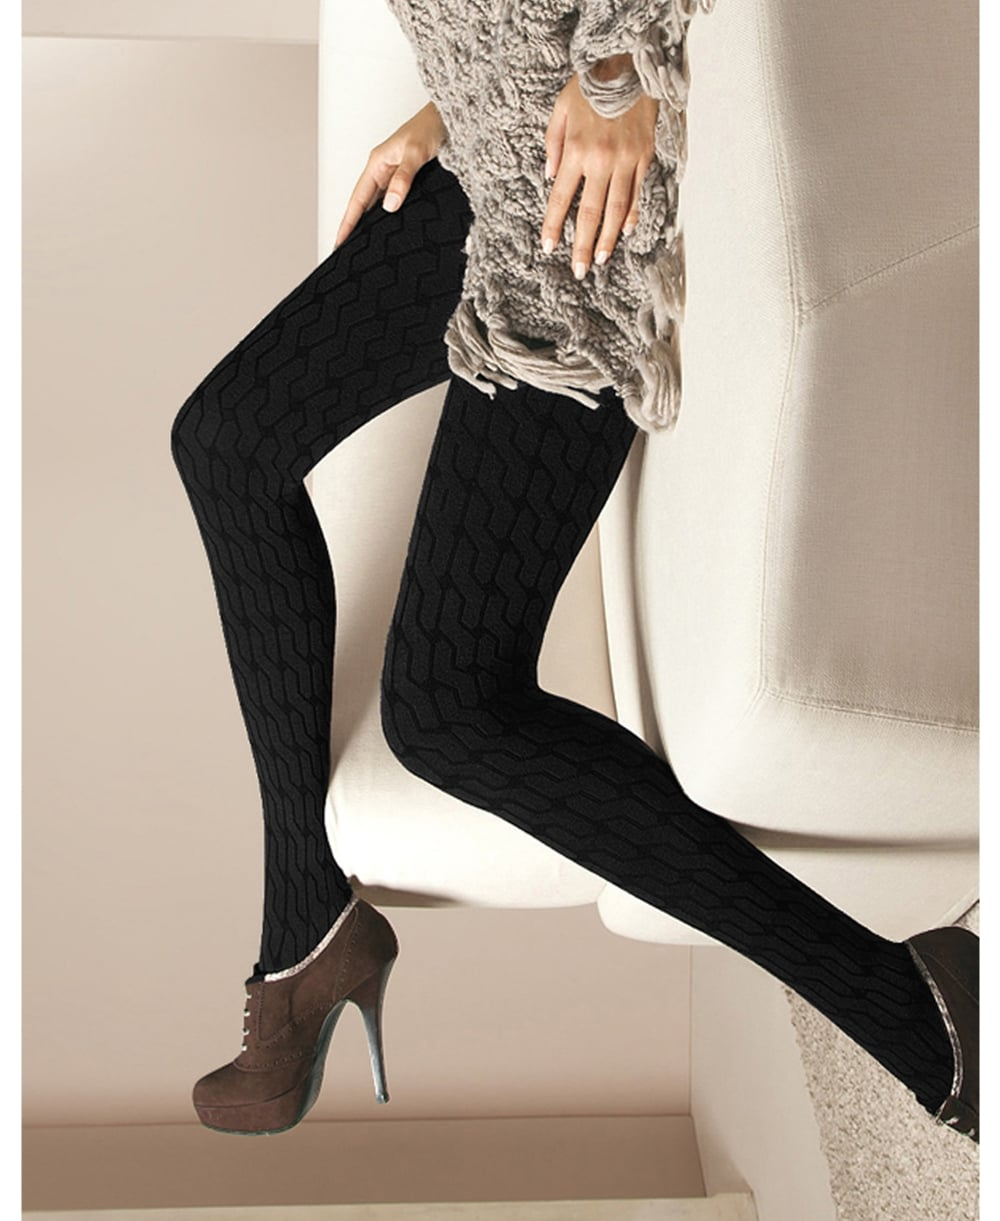 261ba6fdb Oroblu Renee Cable-Knit Cotton Tights - Tights from luxury-legs.com UK